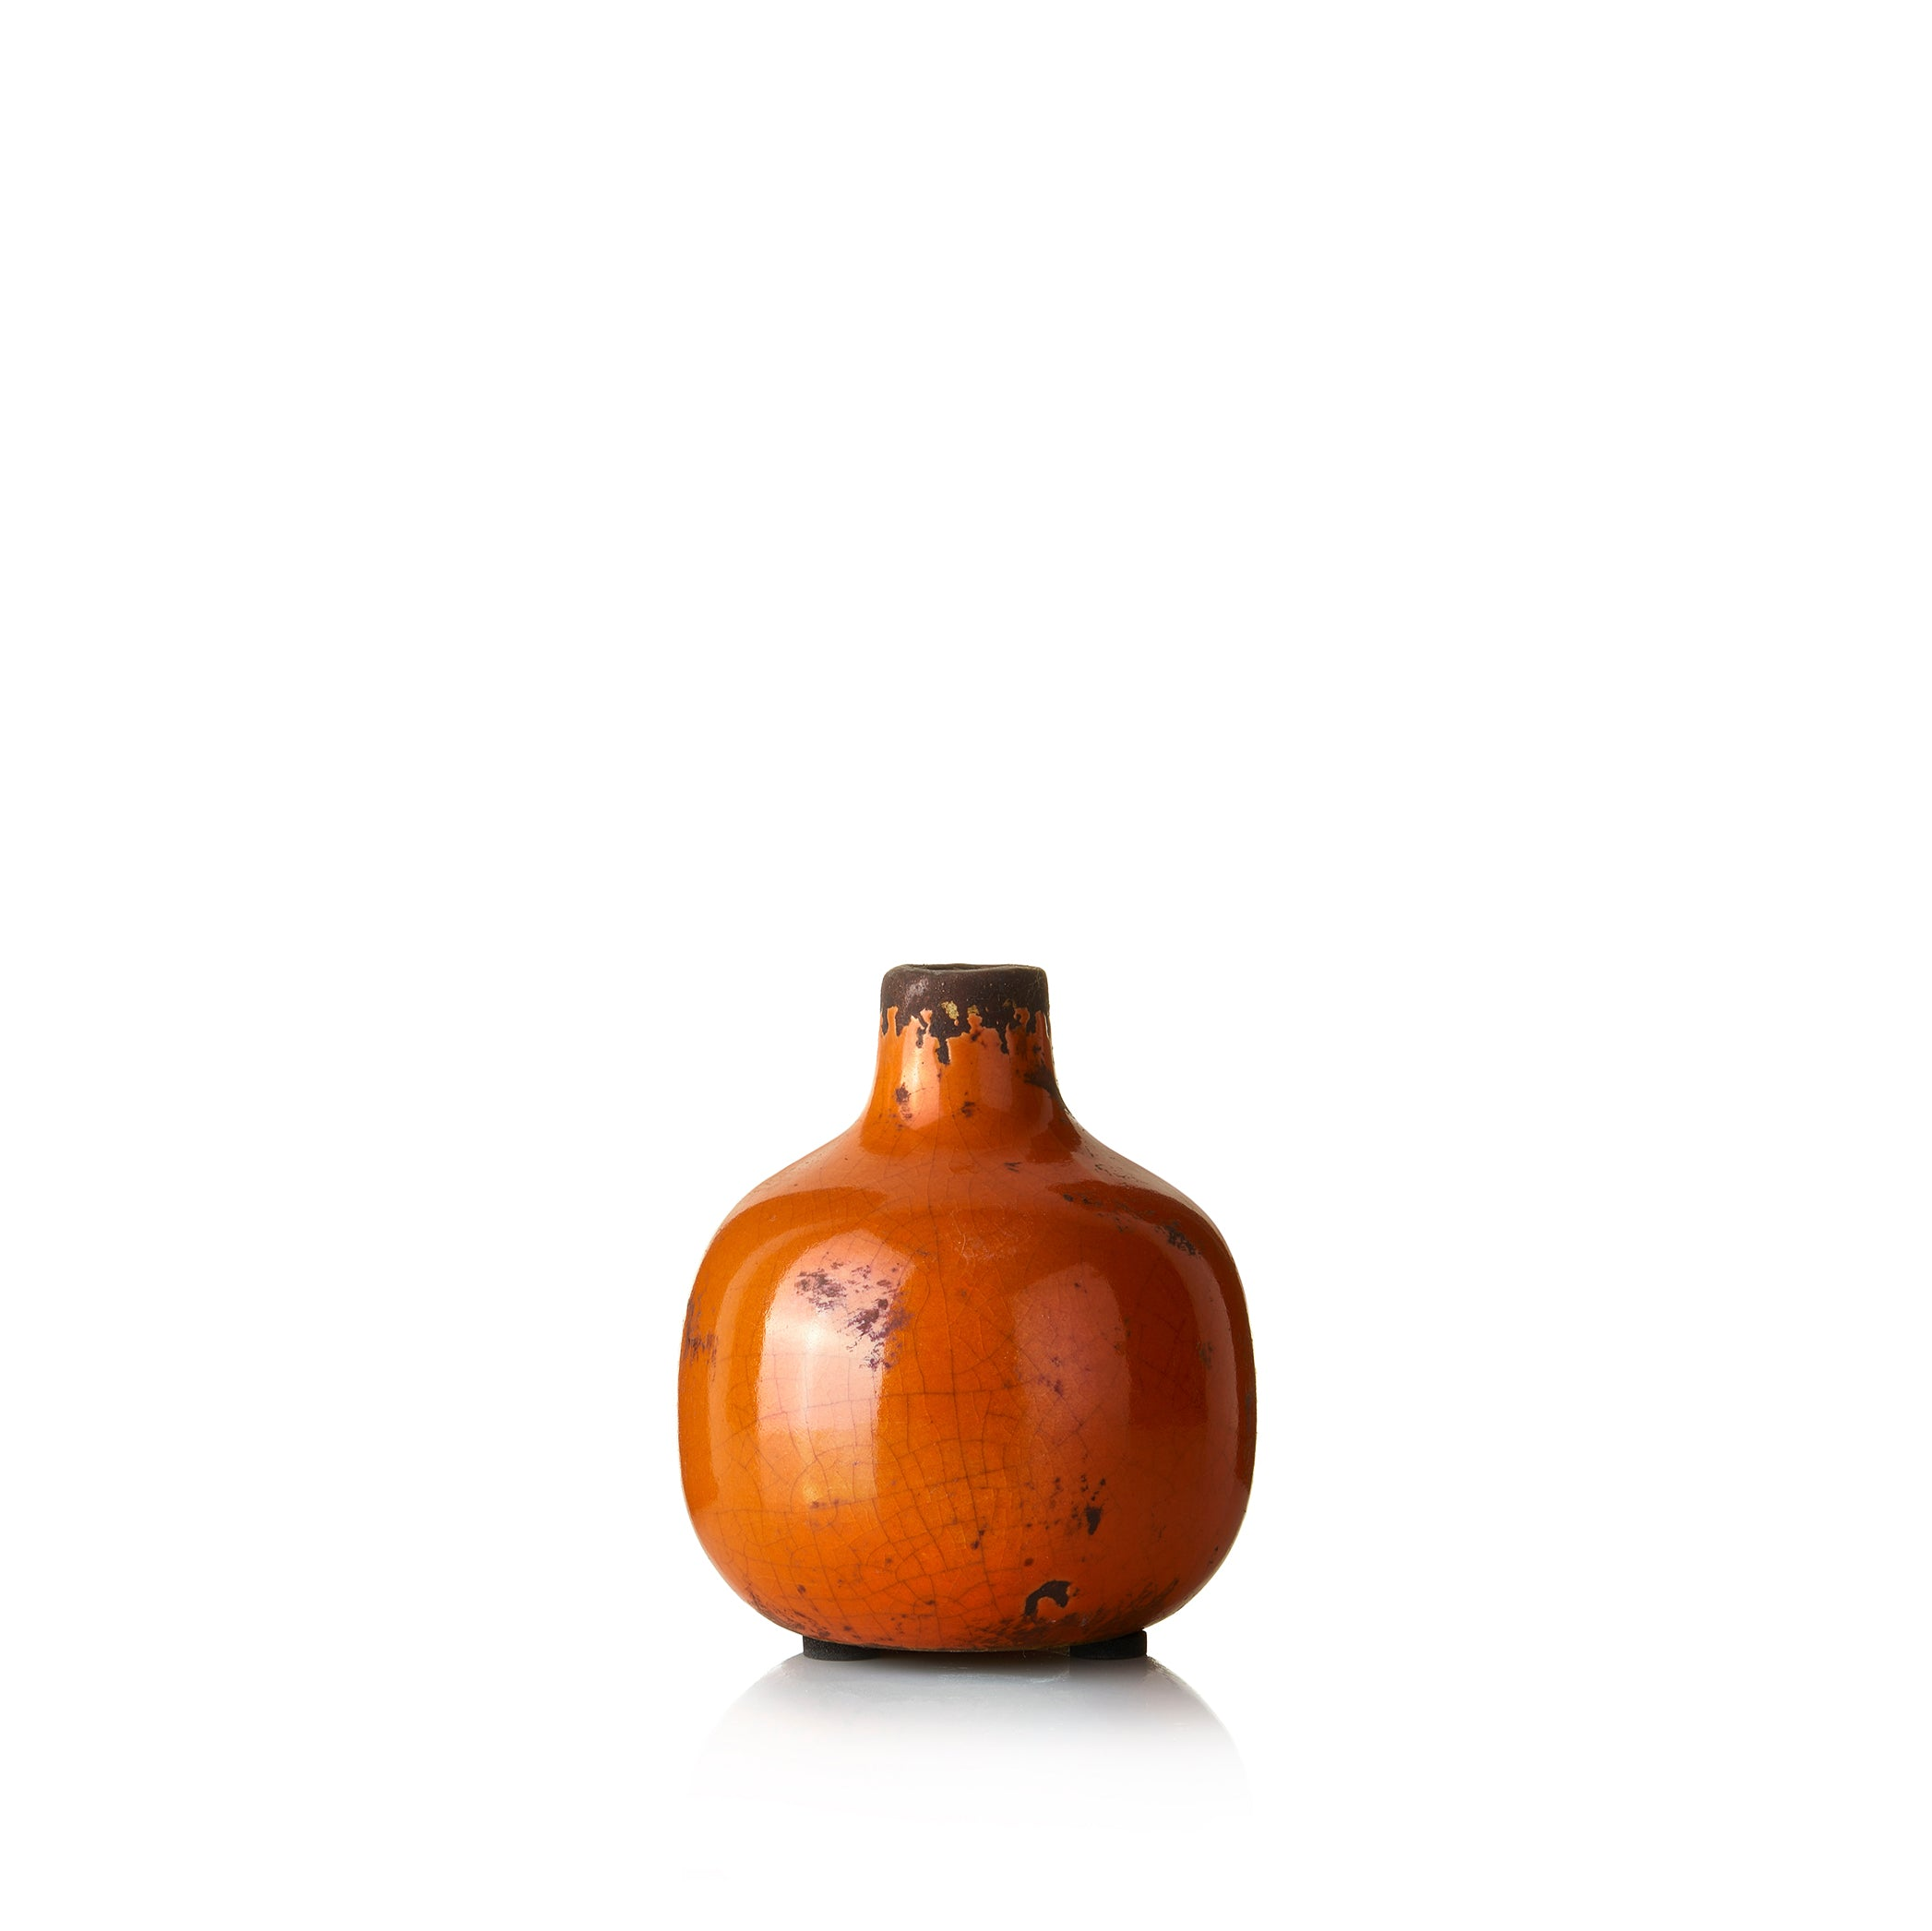 Ceramic Vase in Orange